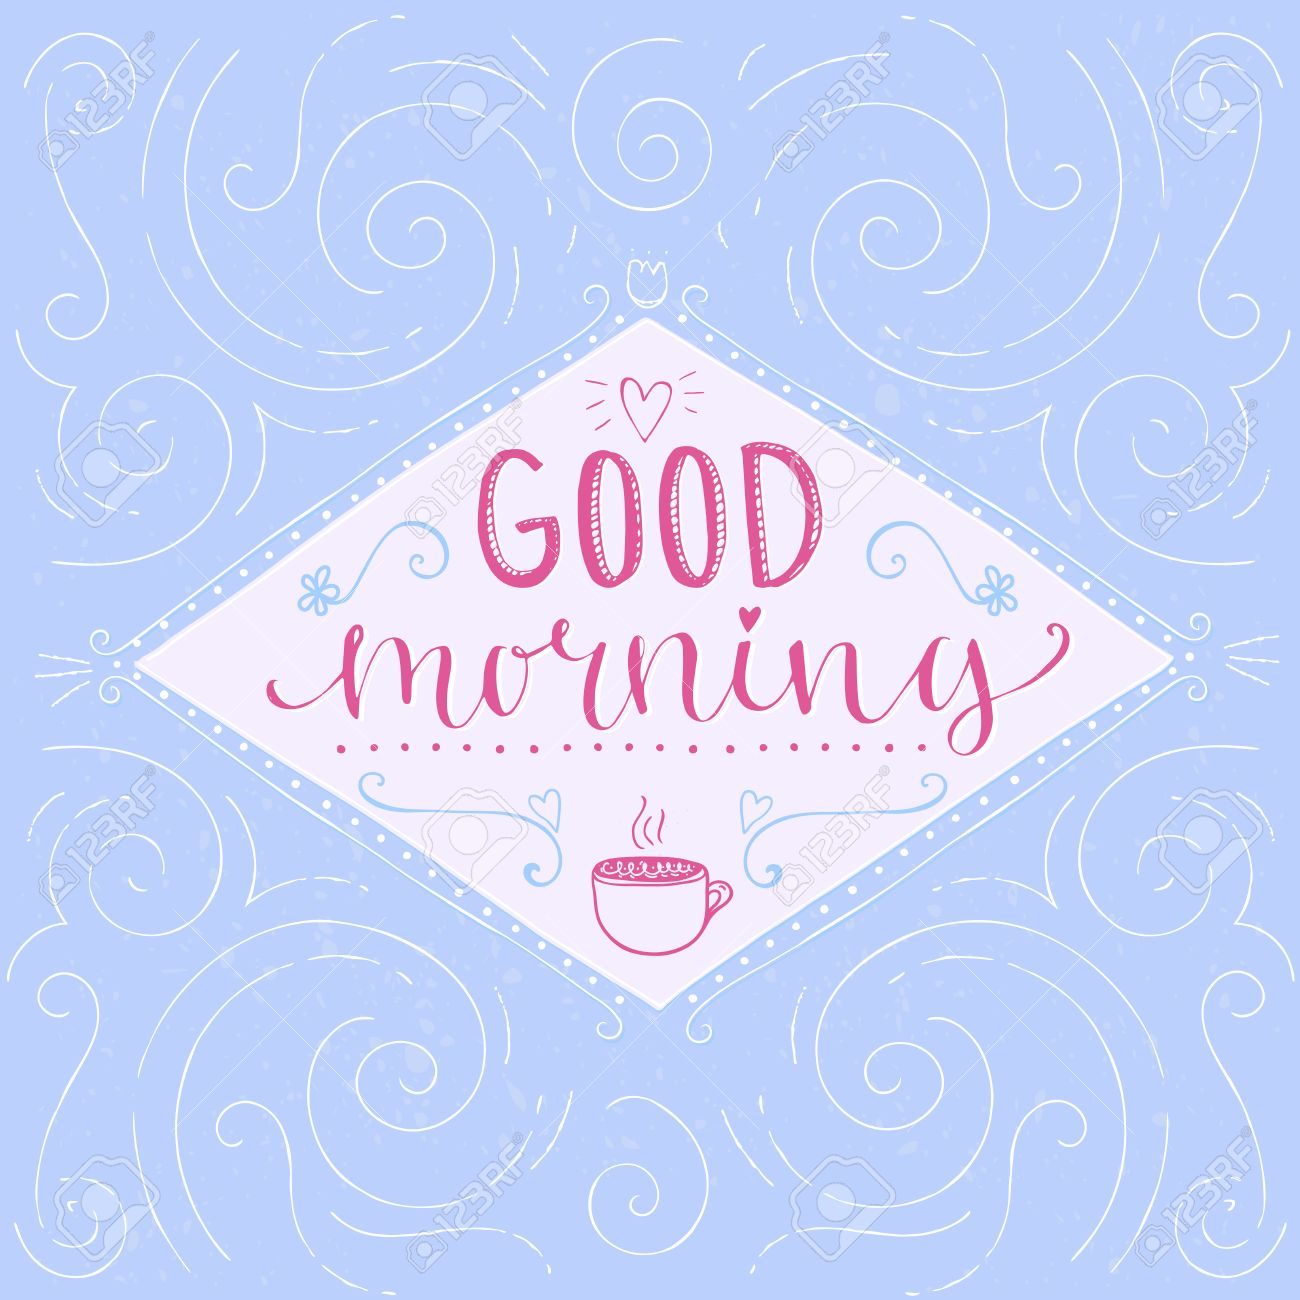 Good morning calligraphy phrase start of the day greeting good morning calligraphy phrase start of the day greeting hand lettering pastel kristyandbryce Image collections